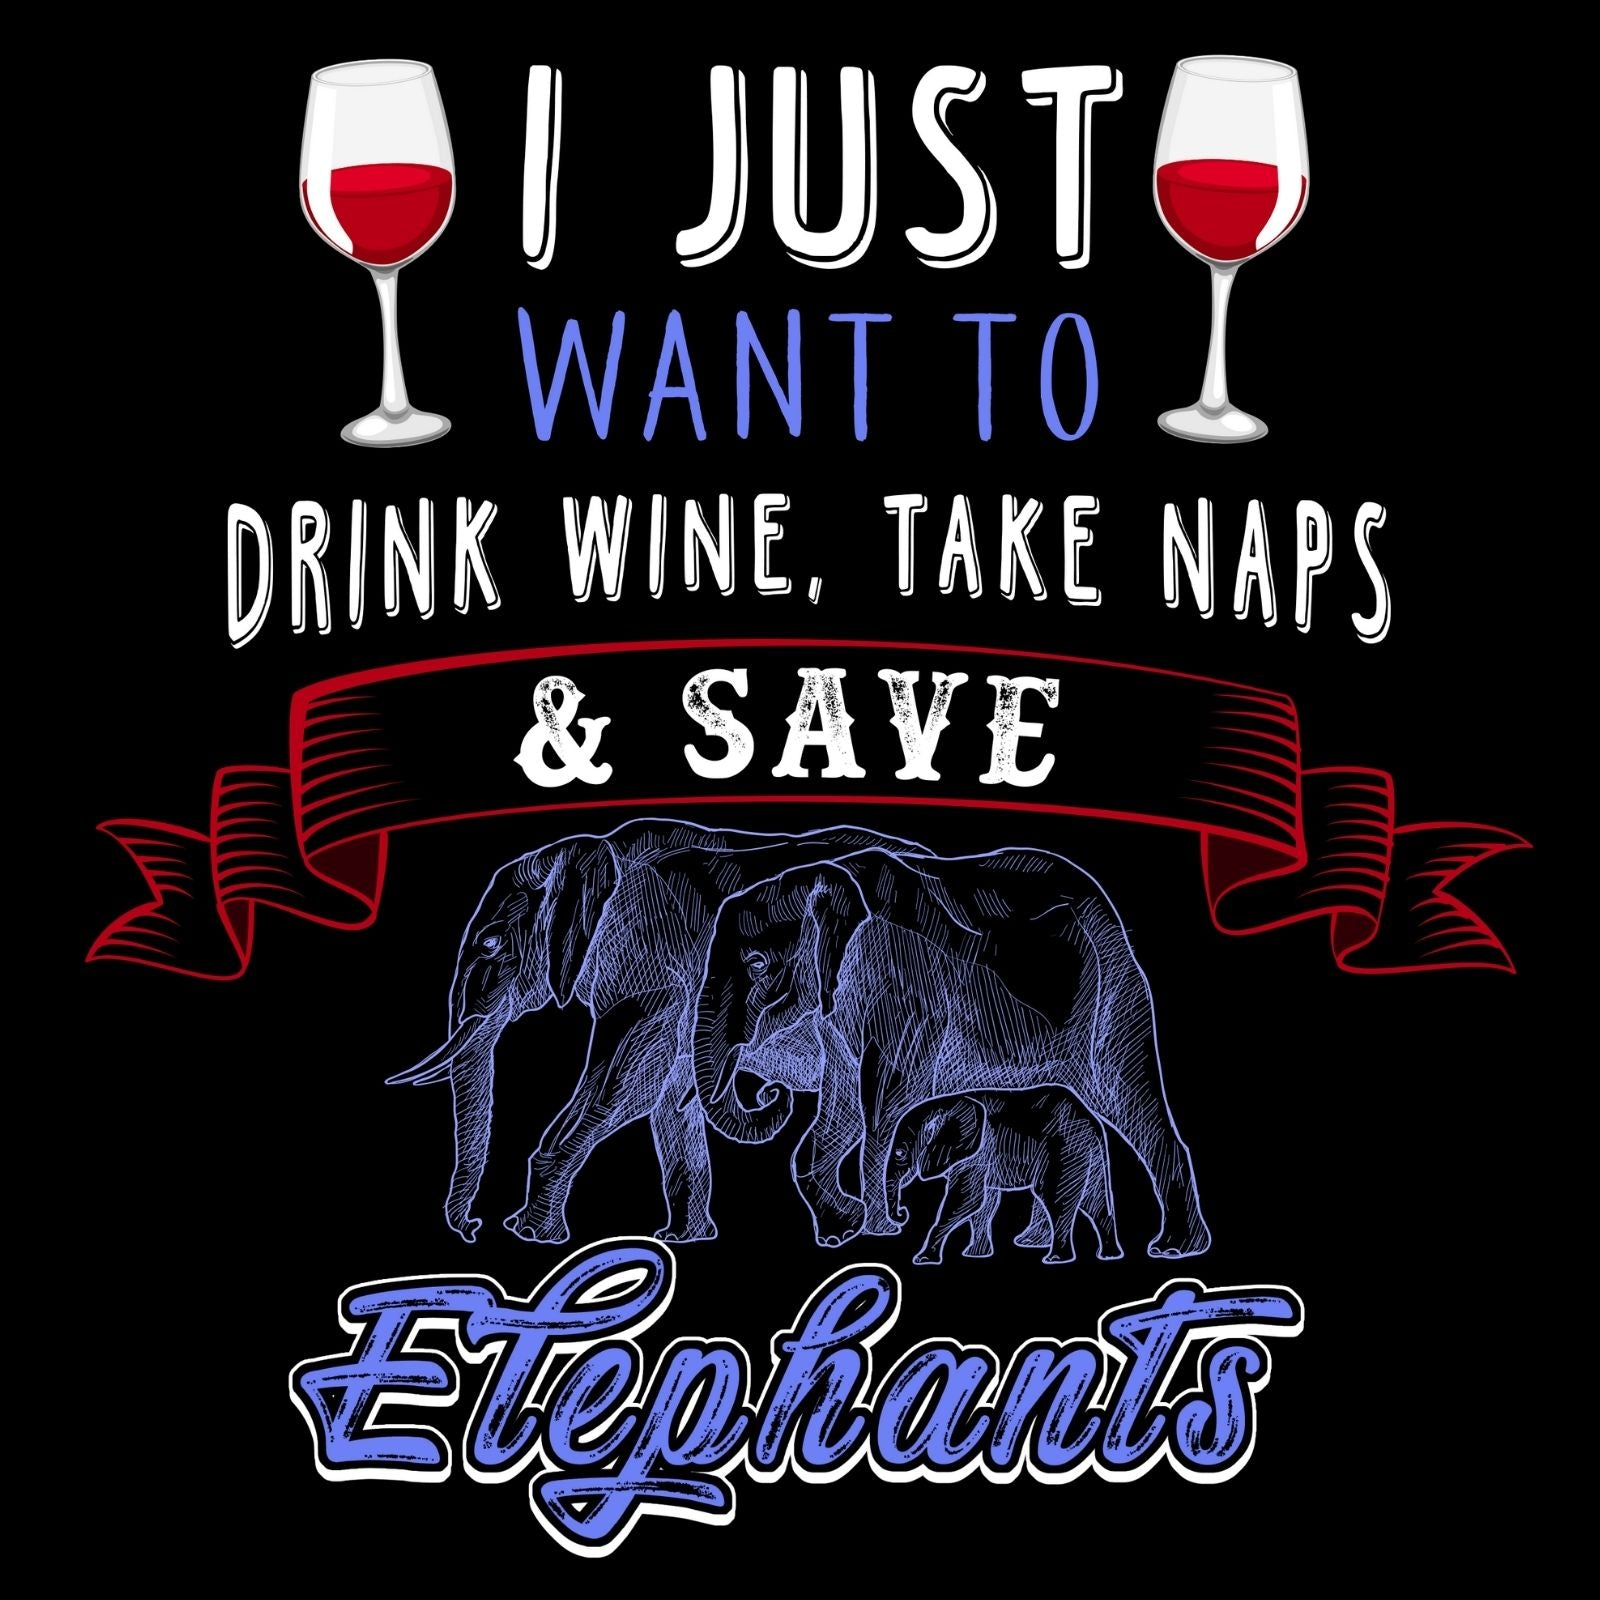 I Just Want To Drink Wine Take Naps & Save Elephants - Bastard Graphics